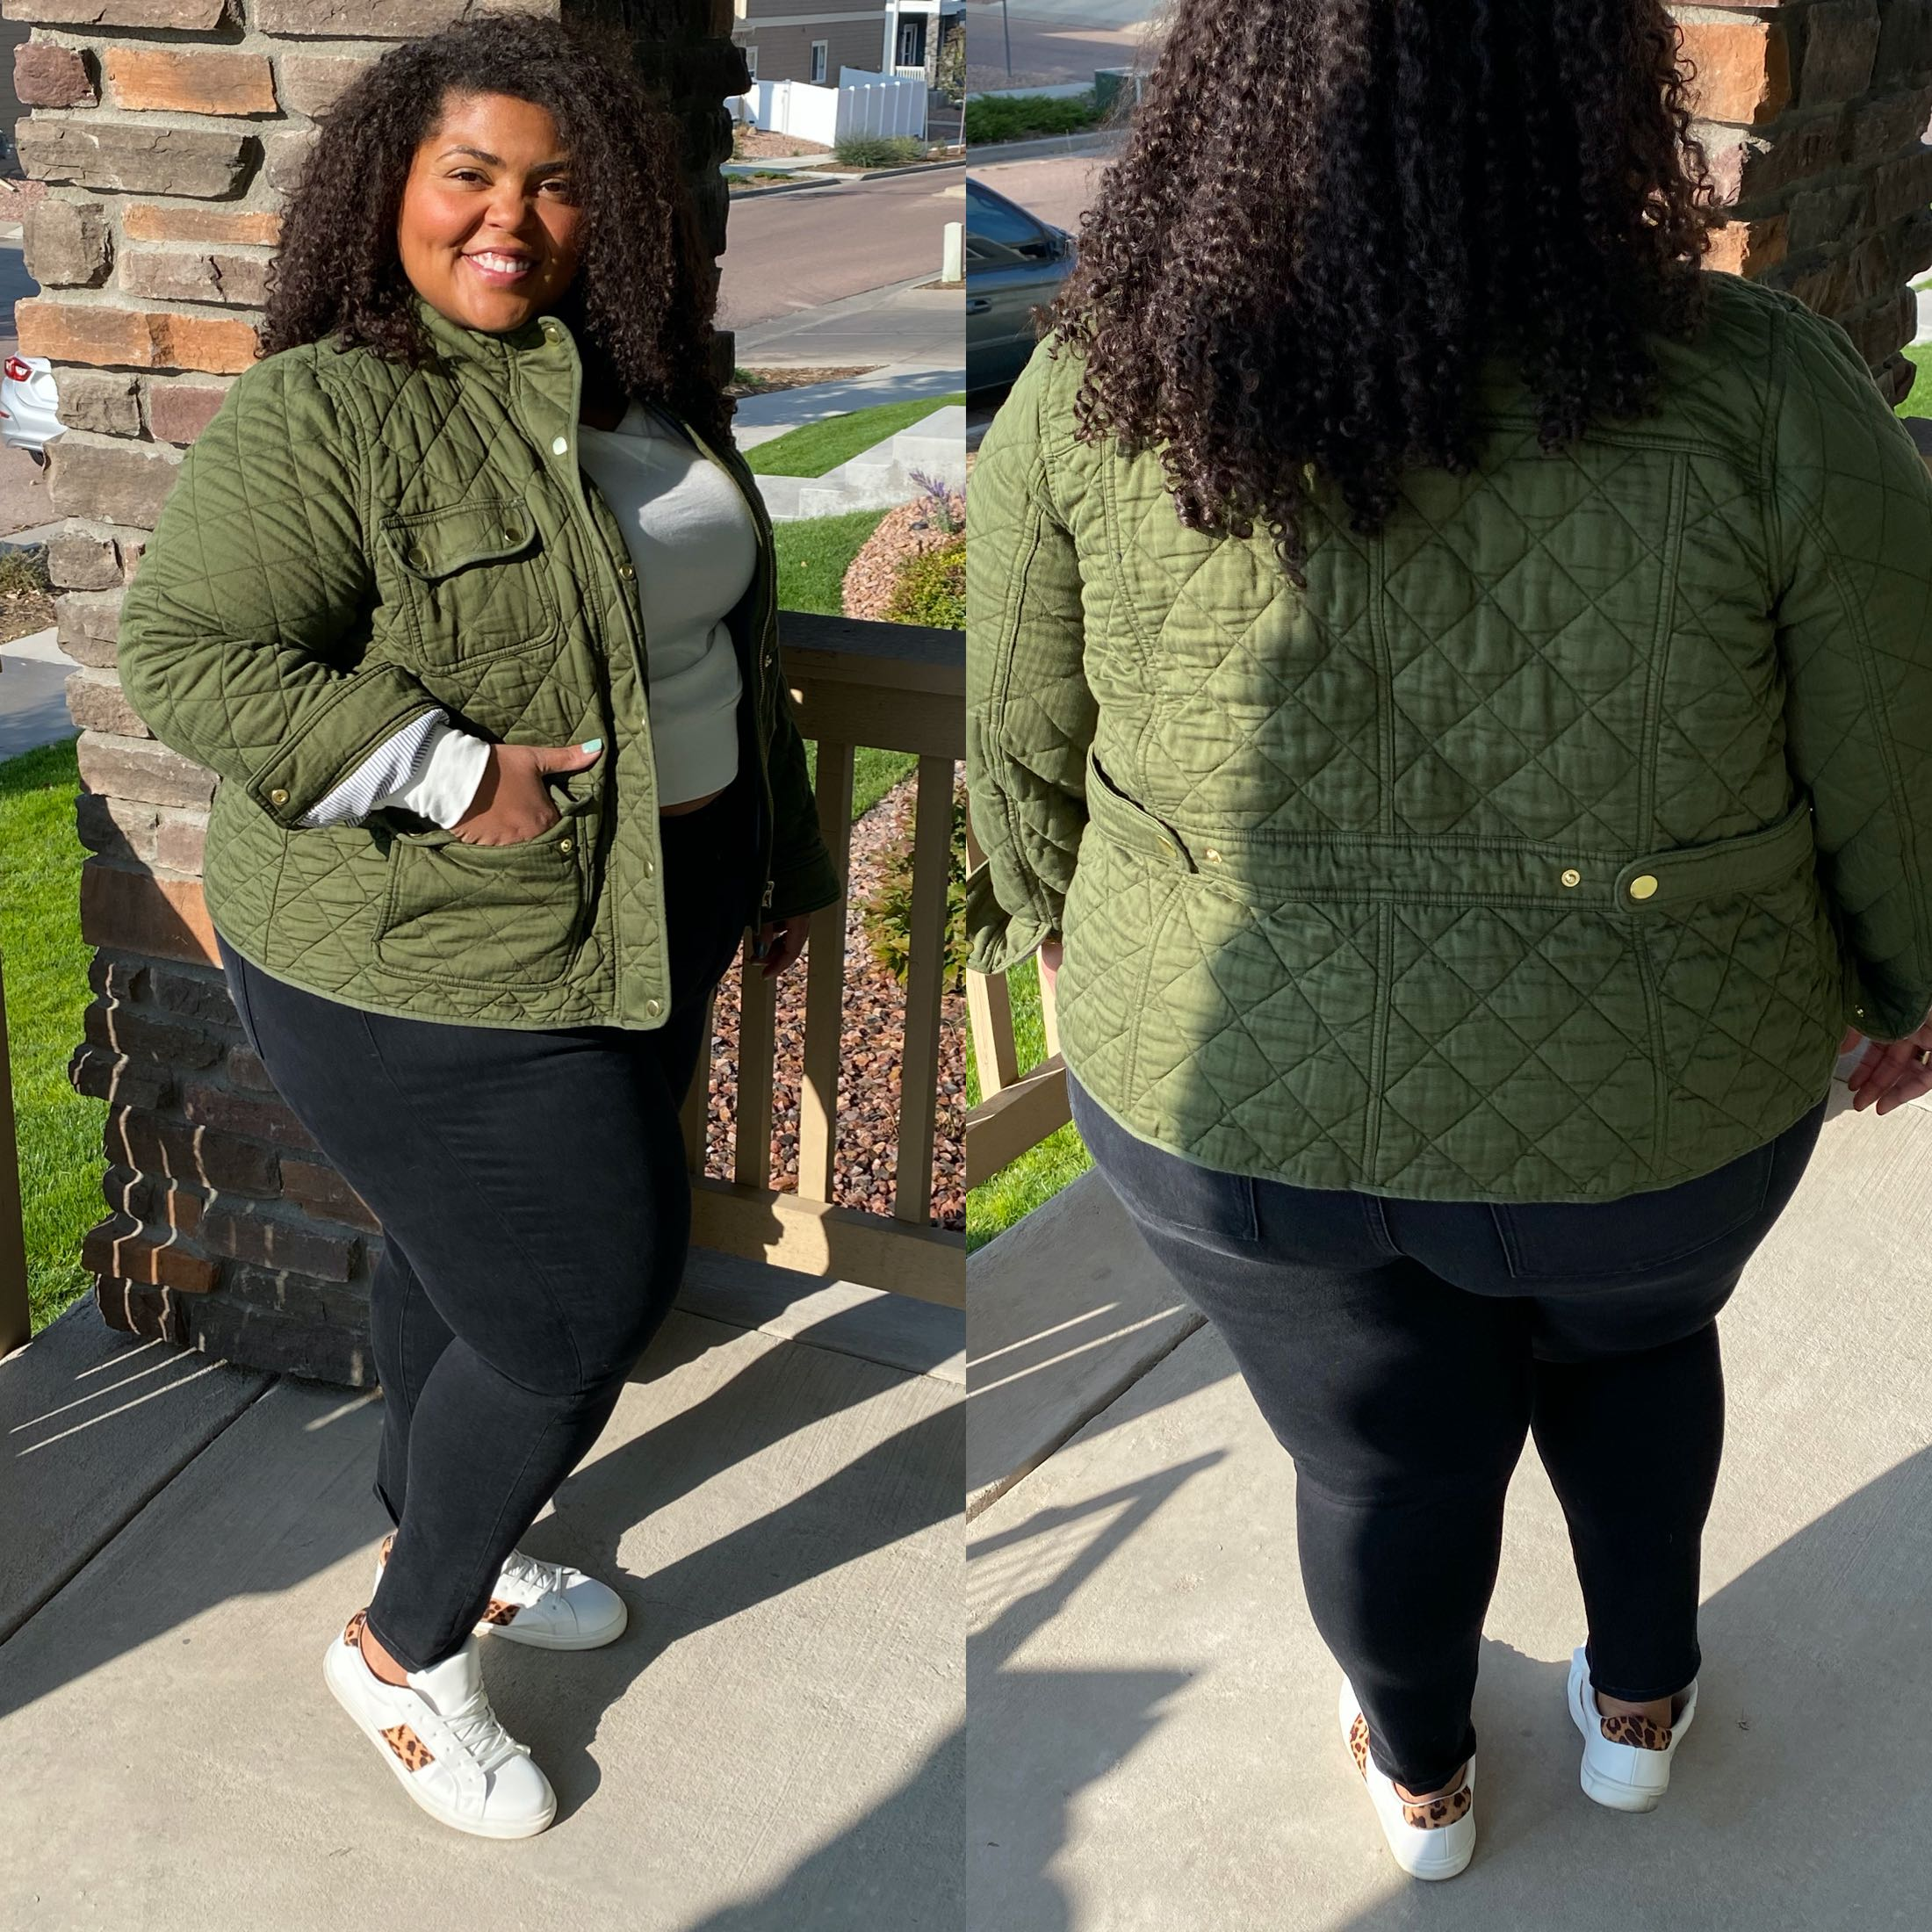 The Barbour Annandale Quilted Jacket is timeless. But how does it compare to the J.Crew Downtown Quilted Field Jacket? Tried & reviewed. Find out.